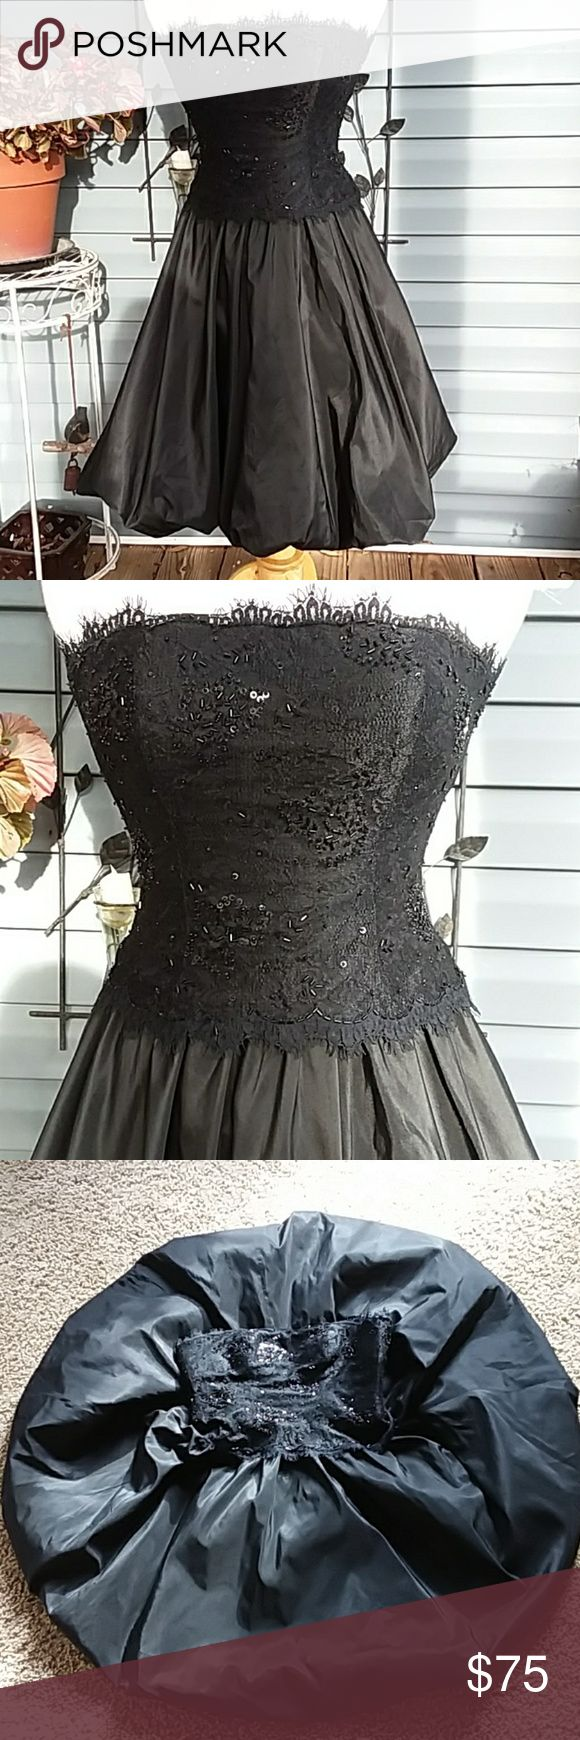 """Tadashi taffeta &lace party dress Just gorgeous full skirt with balloon helpline with fitted lace and beaded top.  Boning and gel strip.  100% silk.  Make an entrance at your holiday party, prom, marine ball, you name it this is it! Measurements: Armpit to armpit is 15.5 Waist. 14.5"""" Length 32"""" Tadashi Shoji Dresses Strapless"""